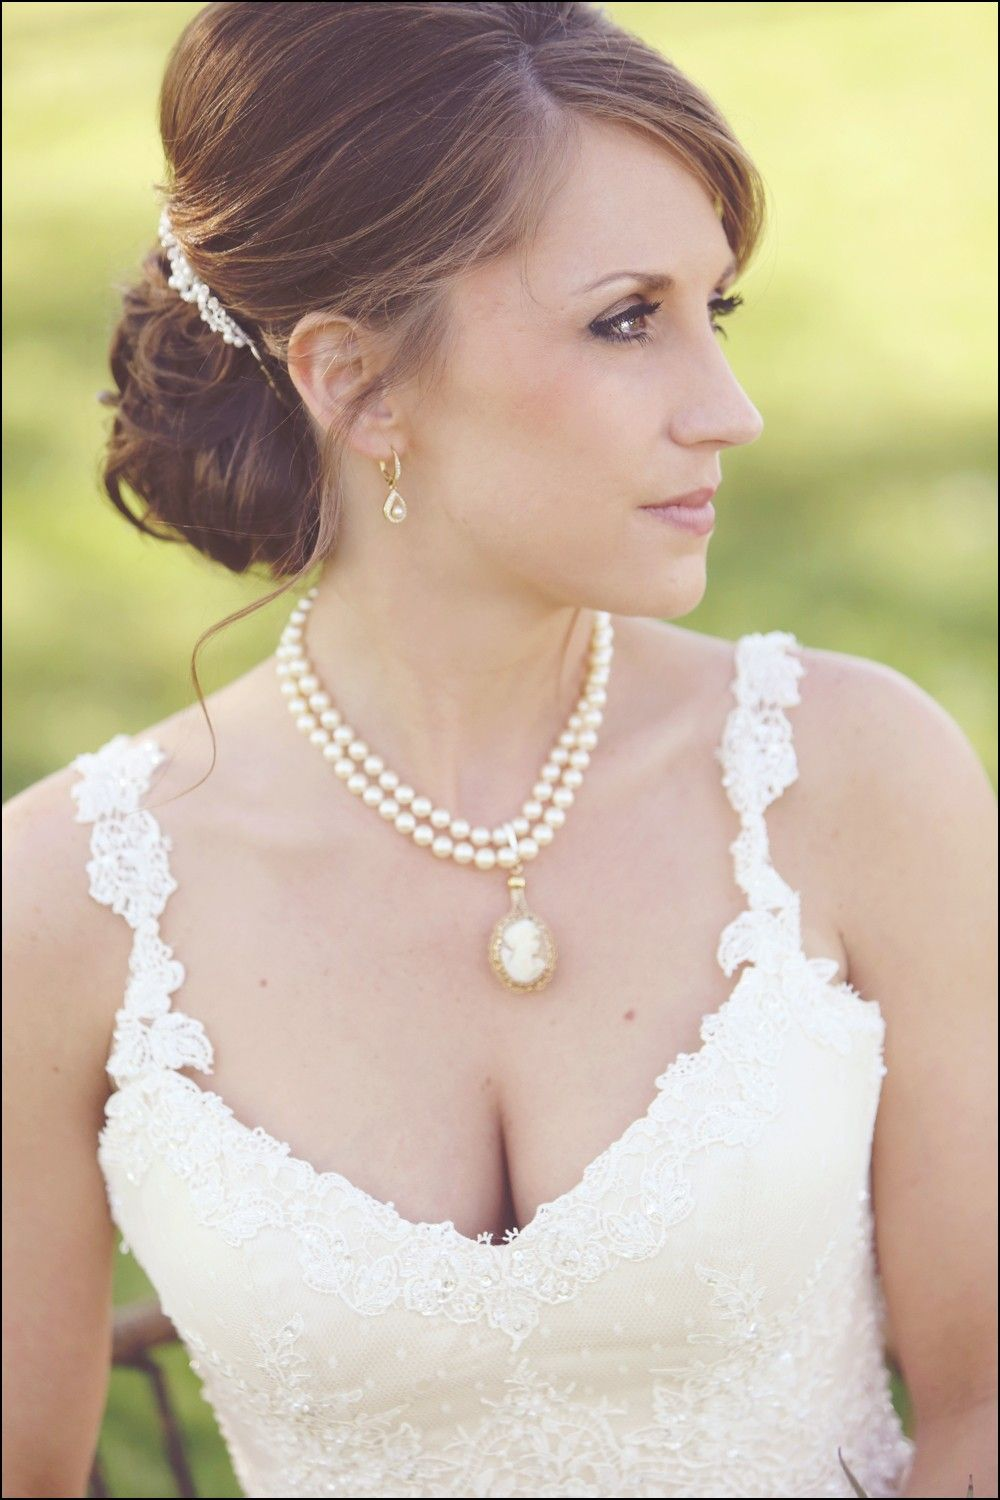 Sweet Home Alabama Wedding Dress | Wedding Ideas | Pinterest ...